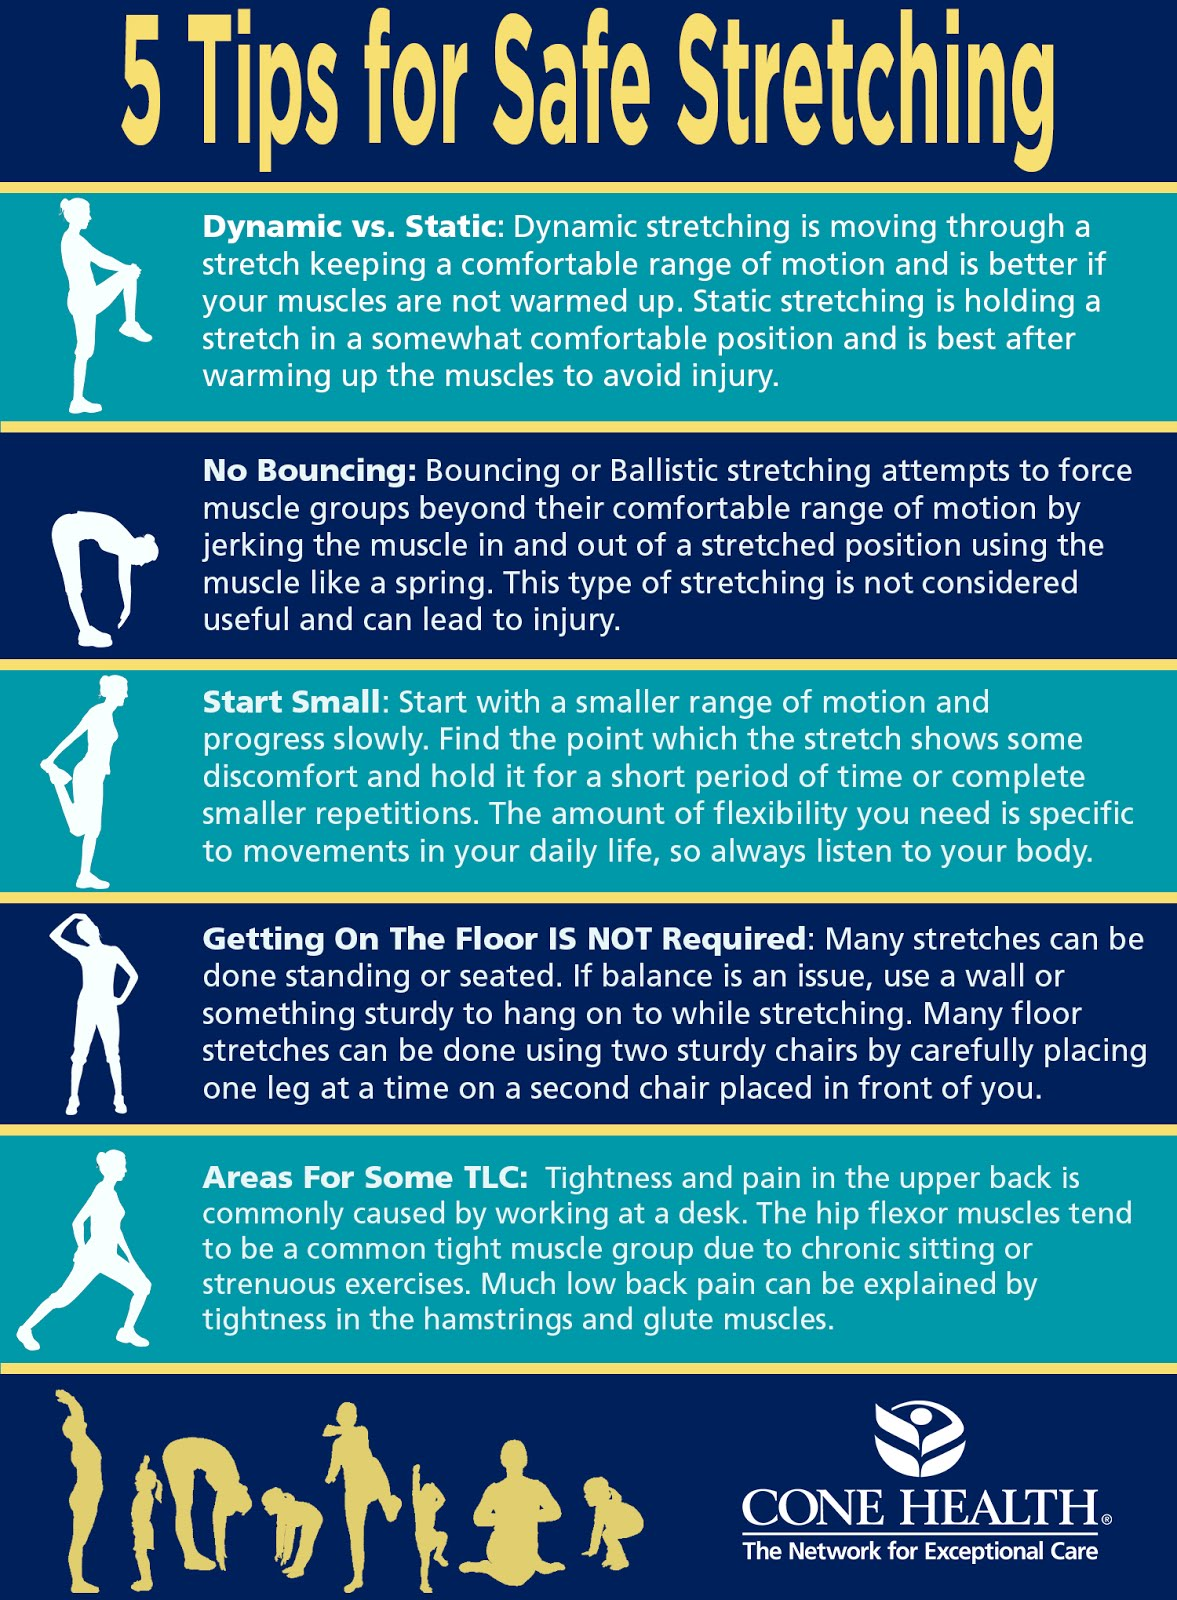 5 Tips For Safe Stretching #infographic